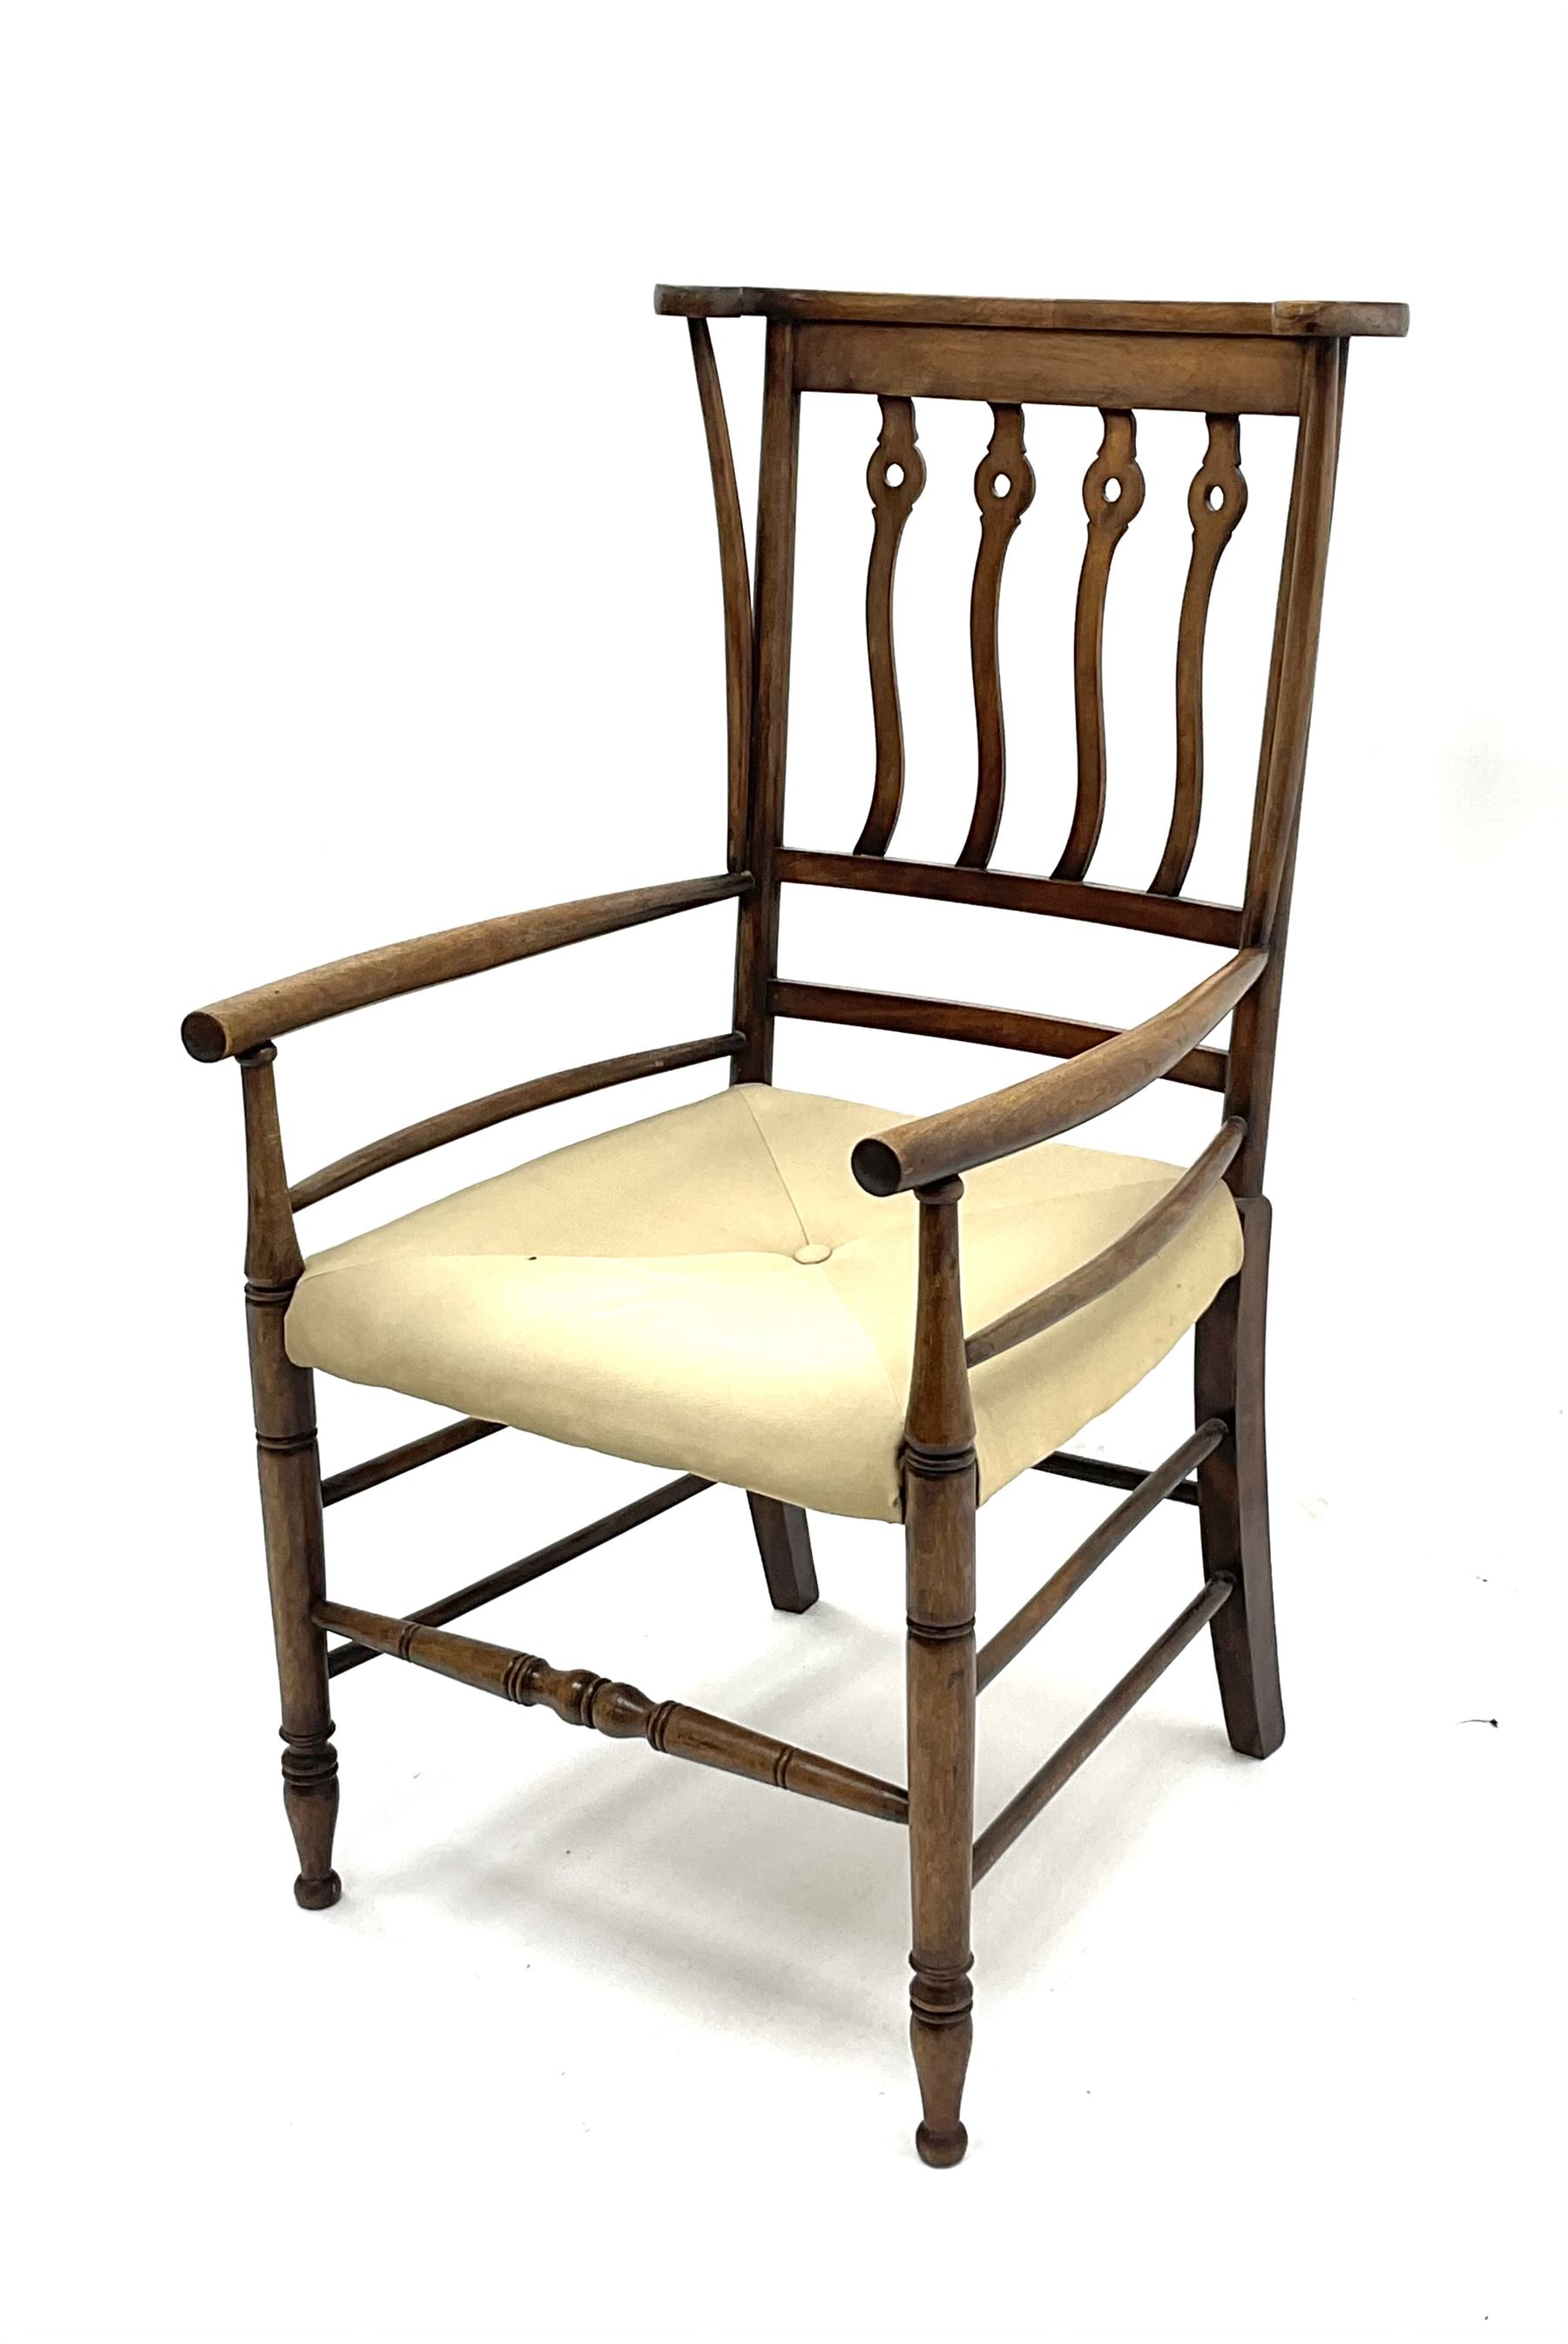 Early 20th century Arts and Crafts style fruitwood elbow chair - Image 3 of 3